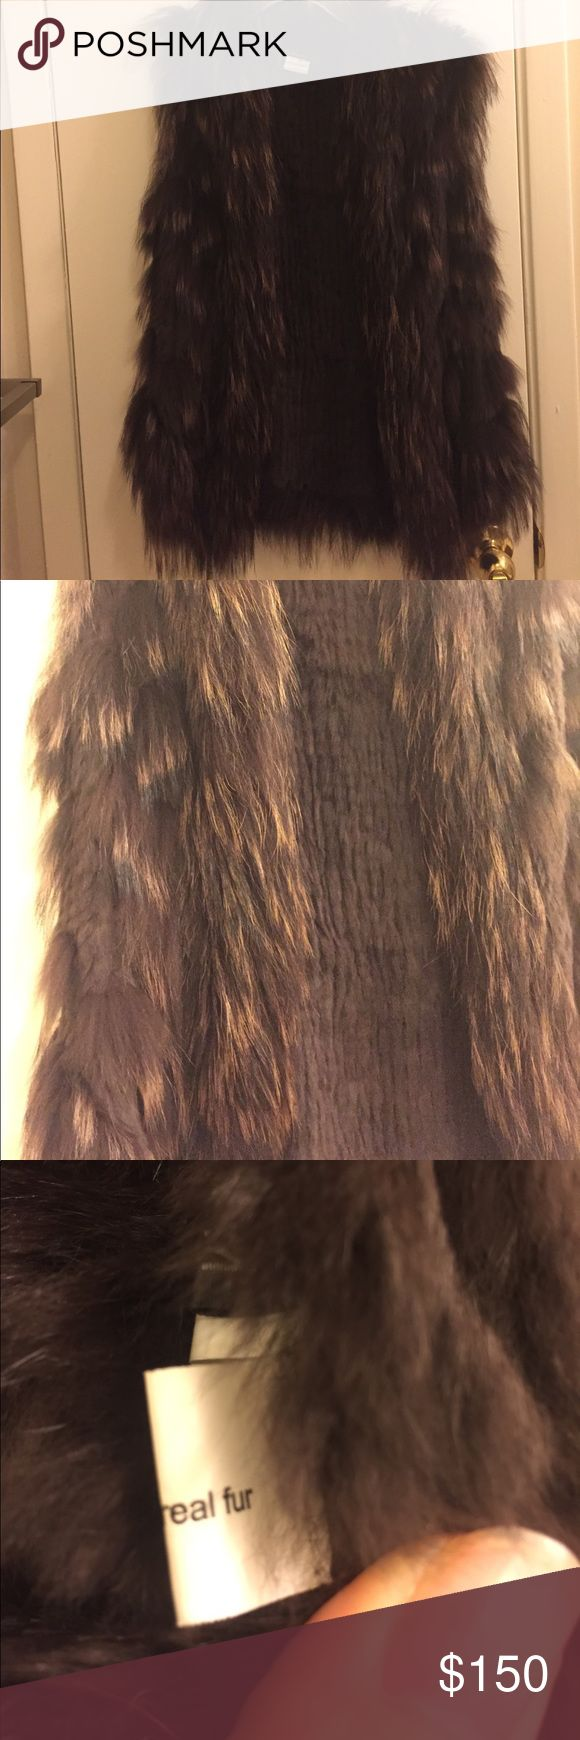 Beautiful 100% real fur vest I have no idea what kind of fur it is. It was a gift. Very soft. Jackets & Coats Vests